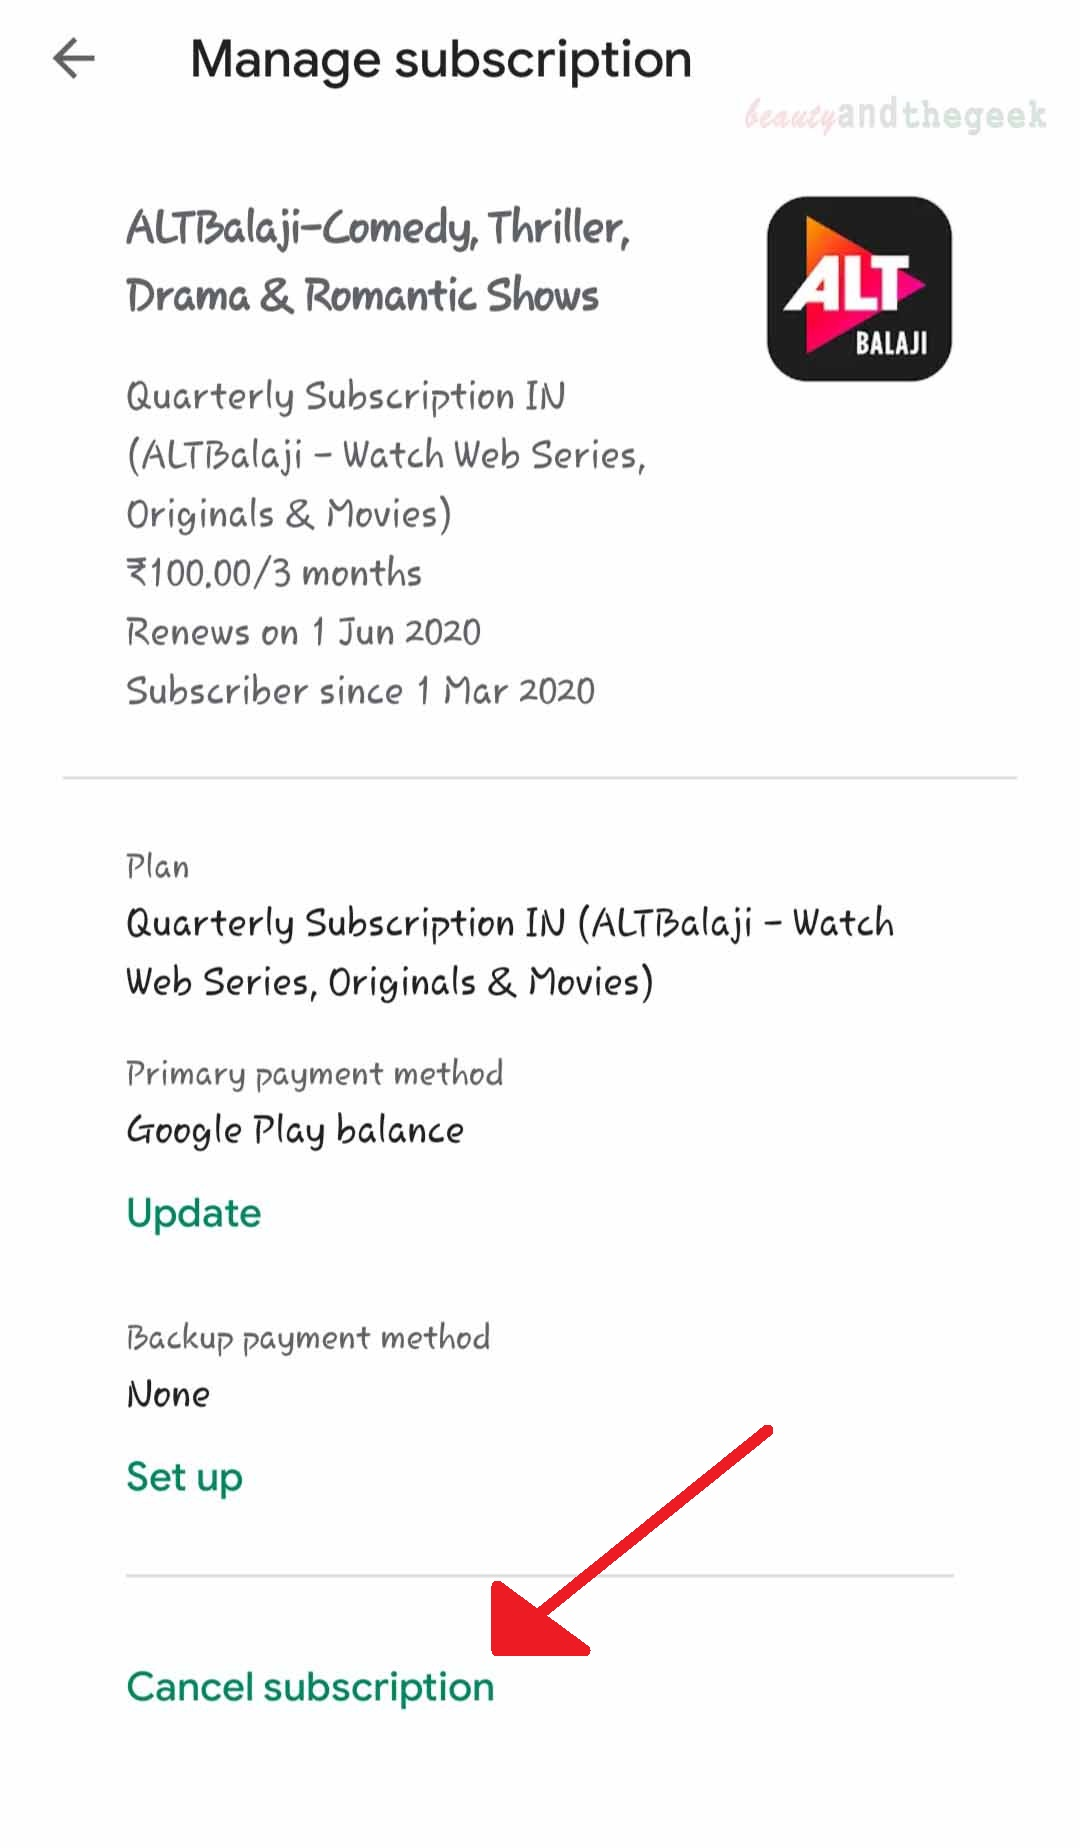 Click on cancel subscription option